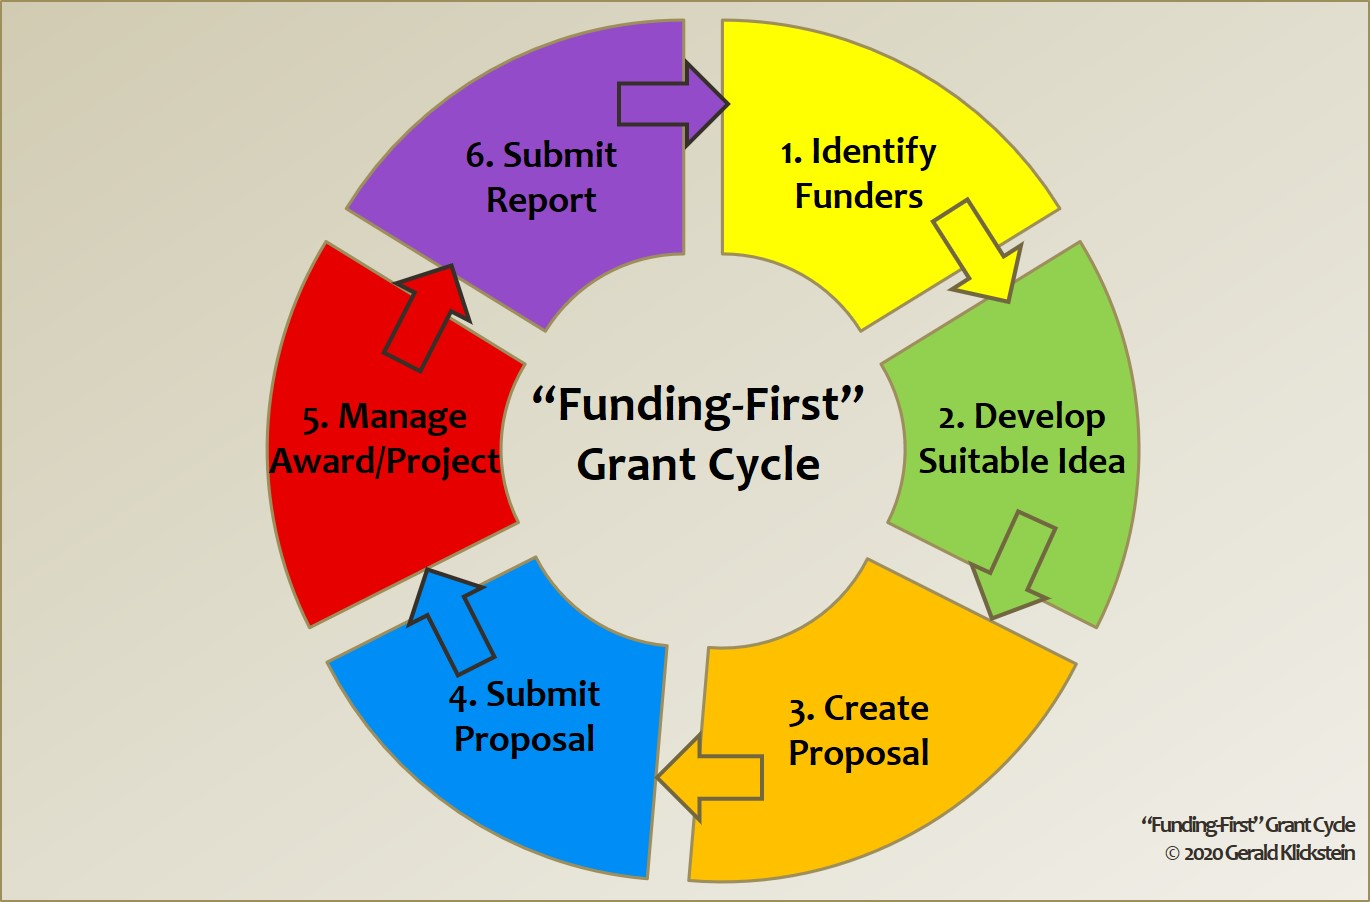 depiction of The 'Funding-First' Grant Cycle by Gerald Klickstein